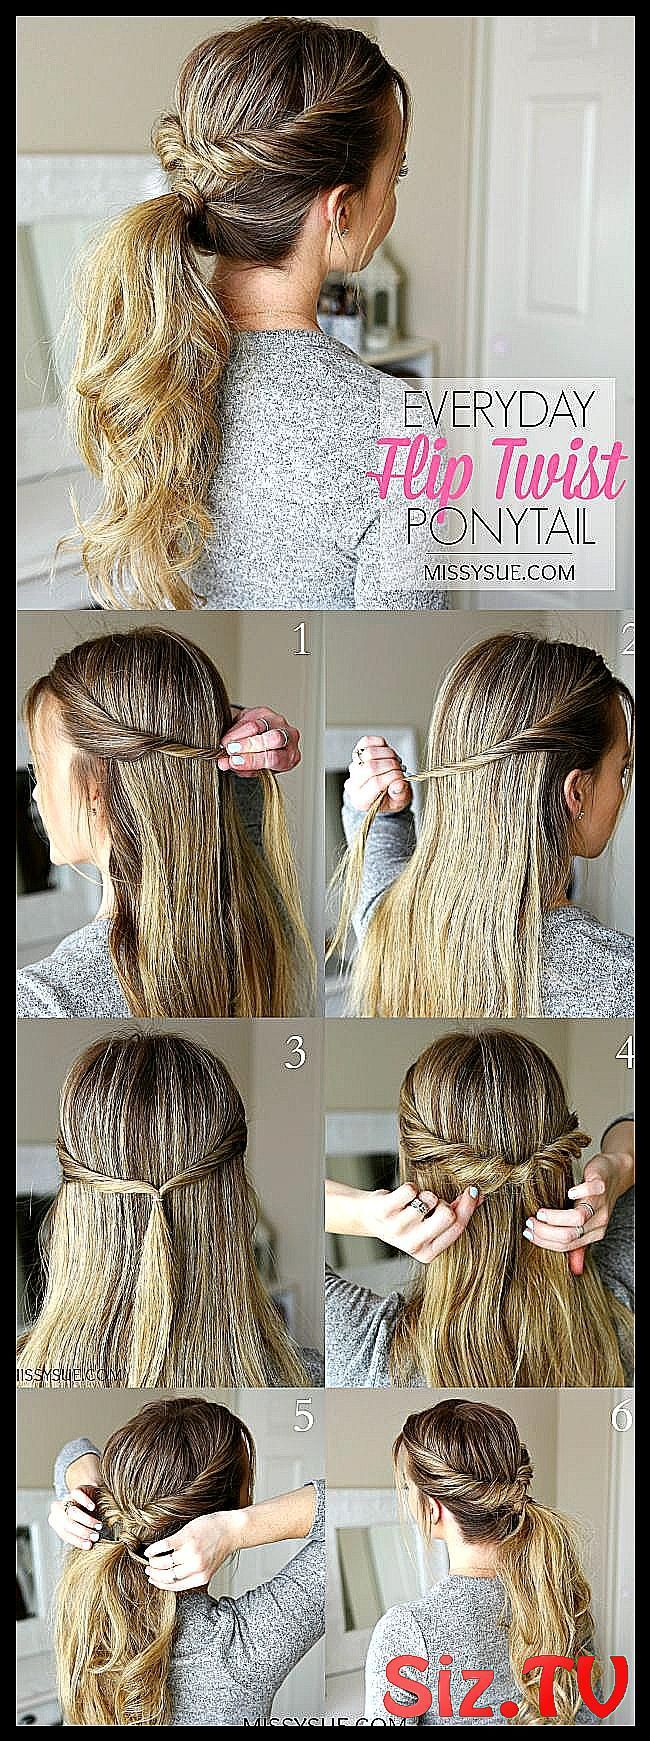 Everyday Flip Twist Ponytail Ponytails are such a great go-to hairstyle. They're quick, easy,... Everyday Flip Twist Ponytail Ponytails are such a great go-to hairstyle. They're quick, easy,...,